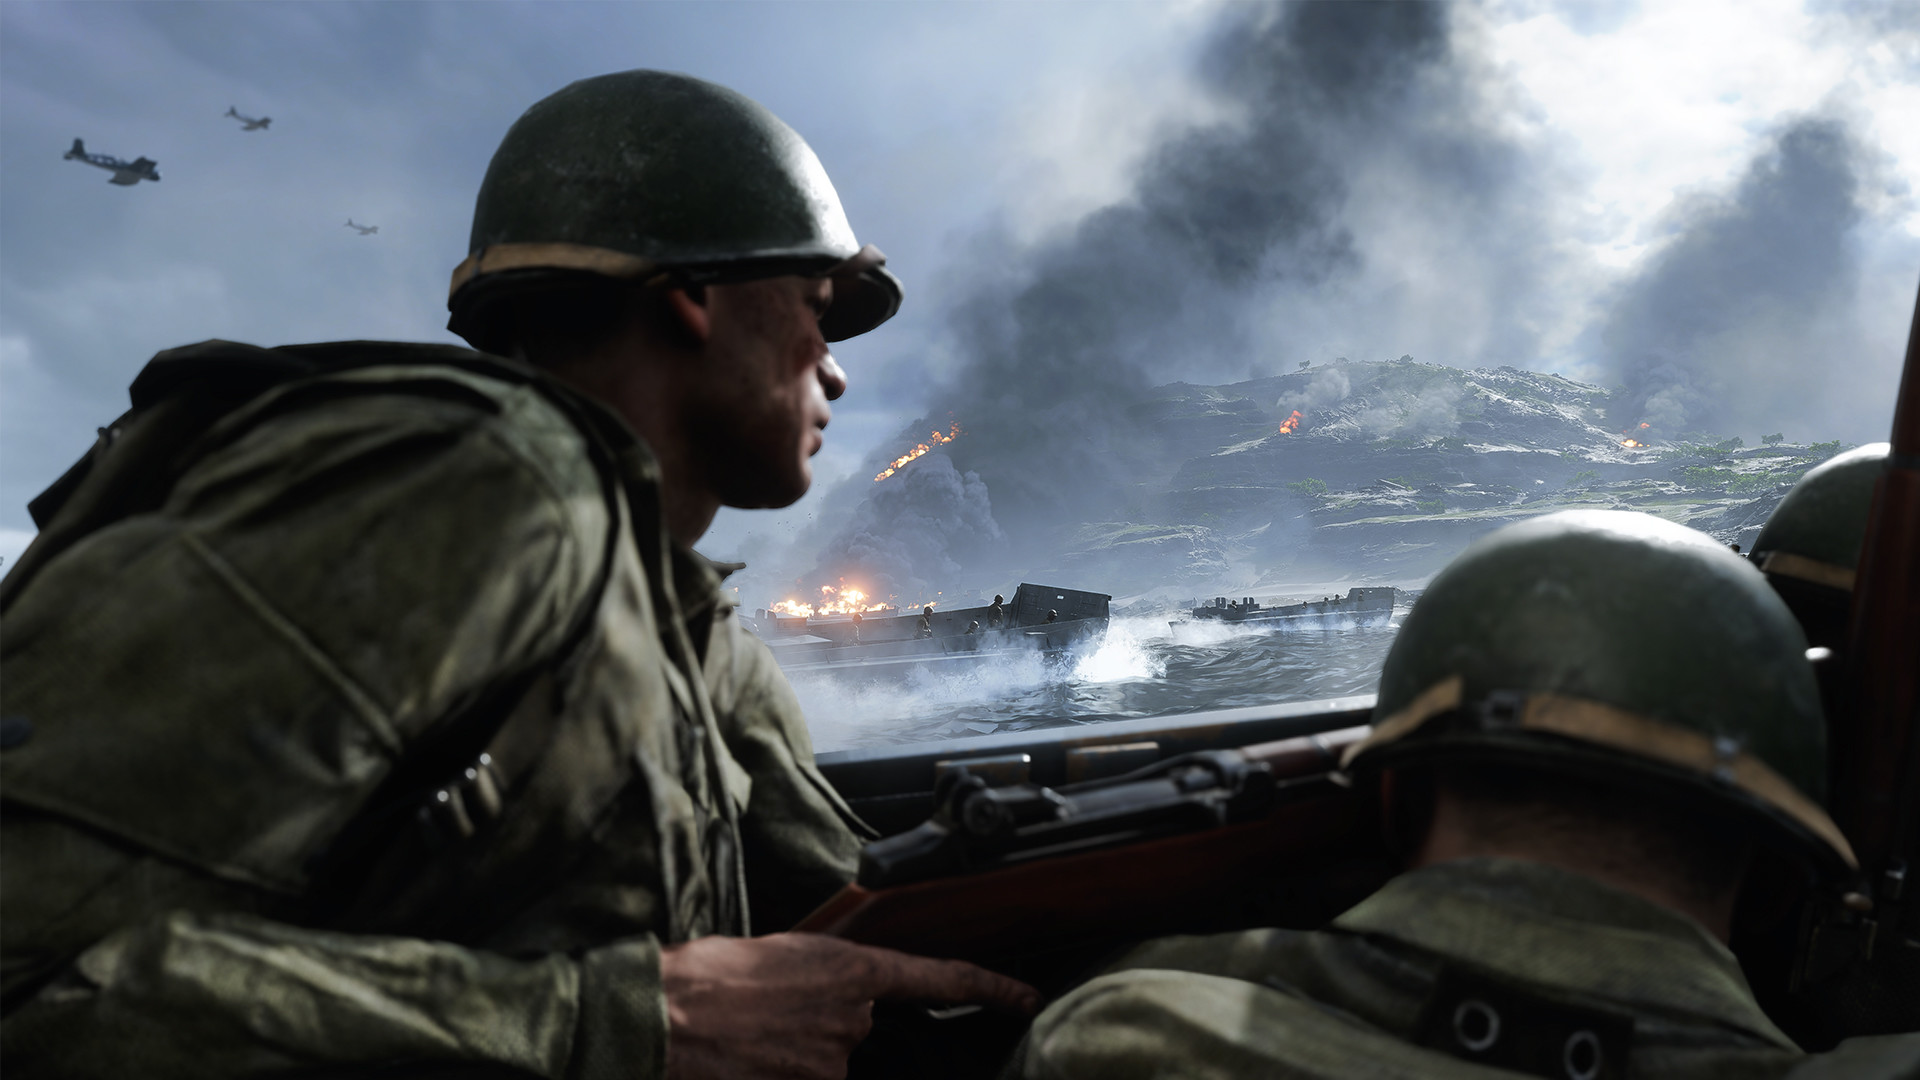 Find the best gaming PC for Battlefield V